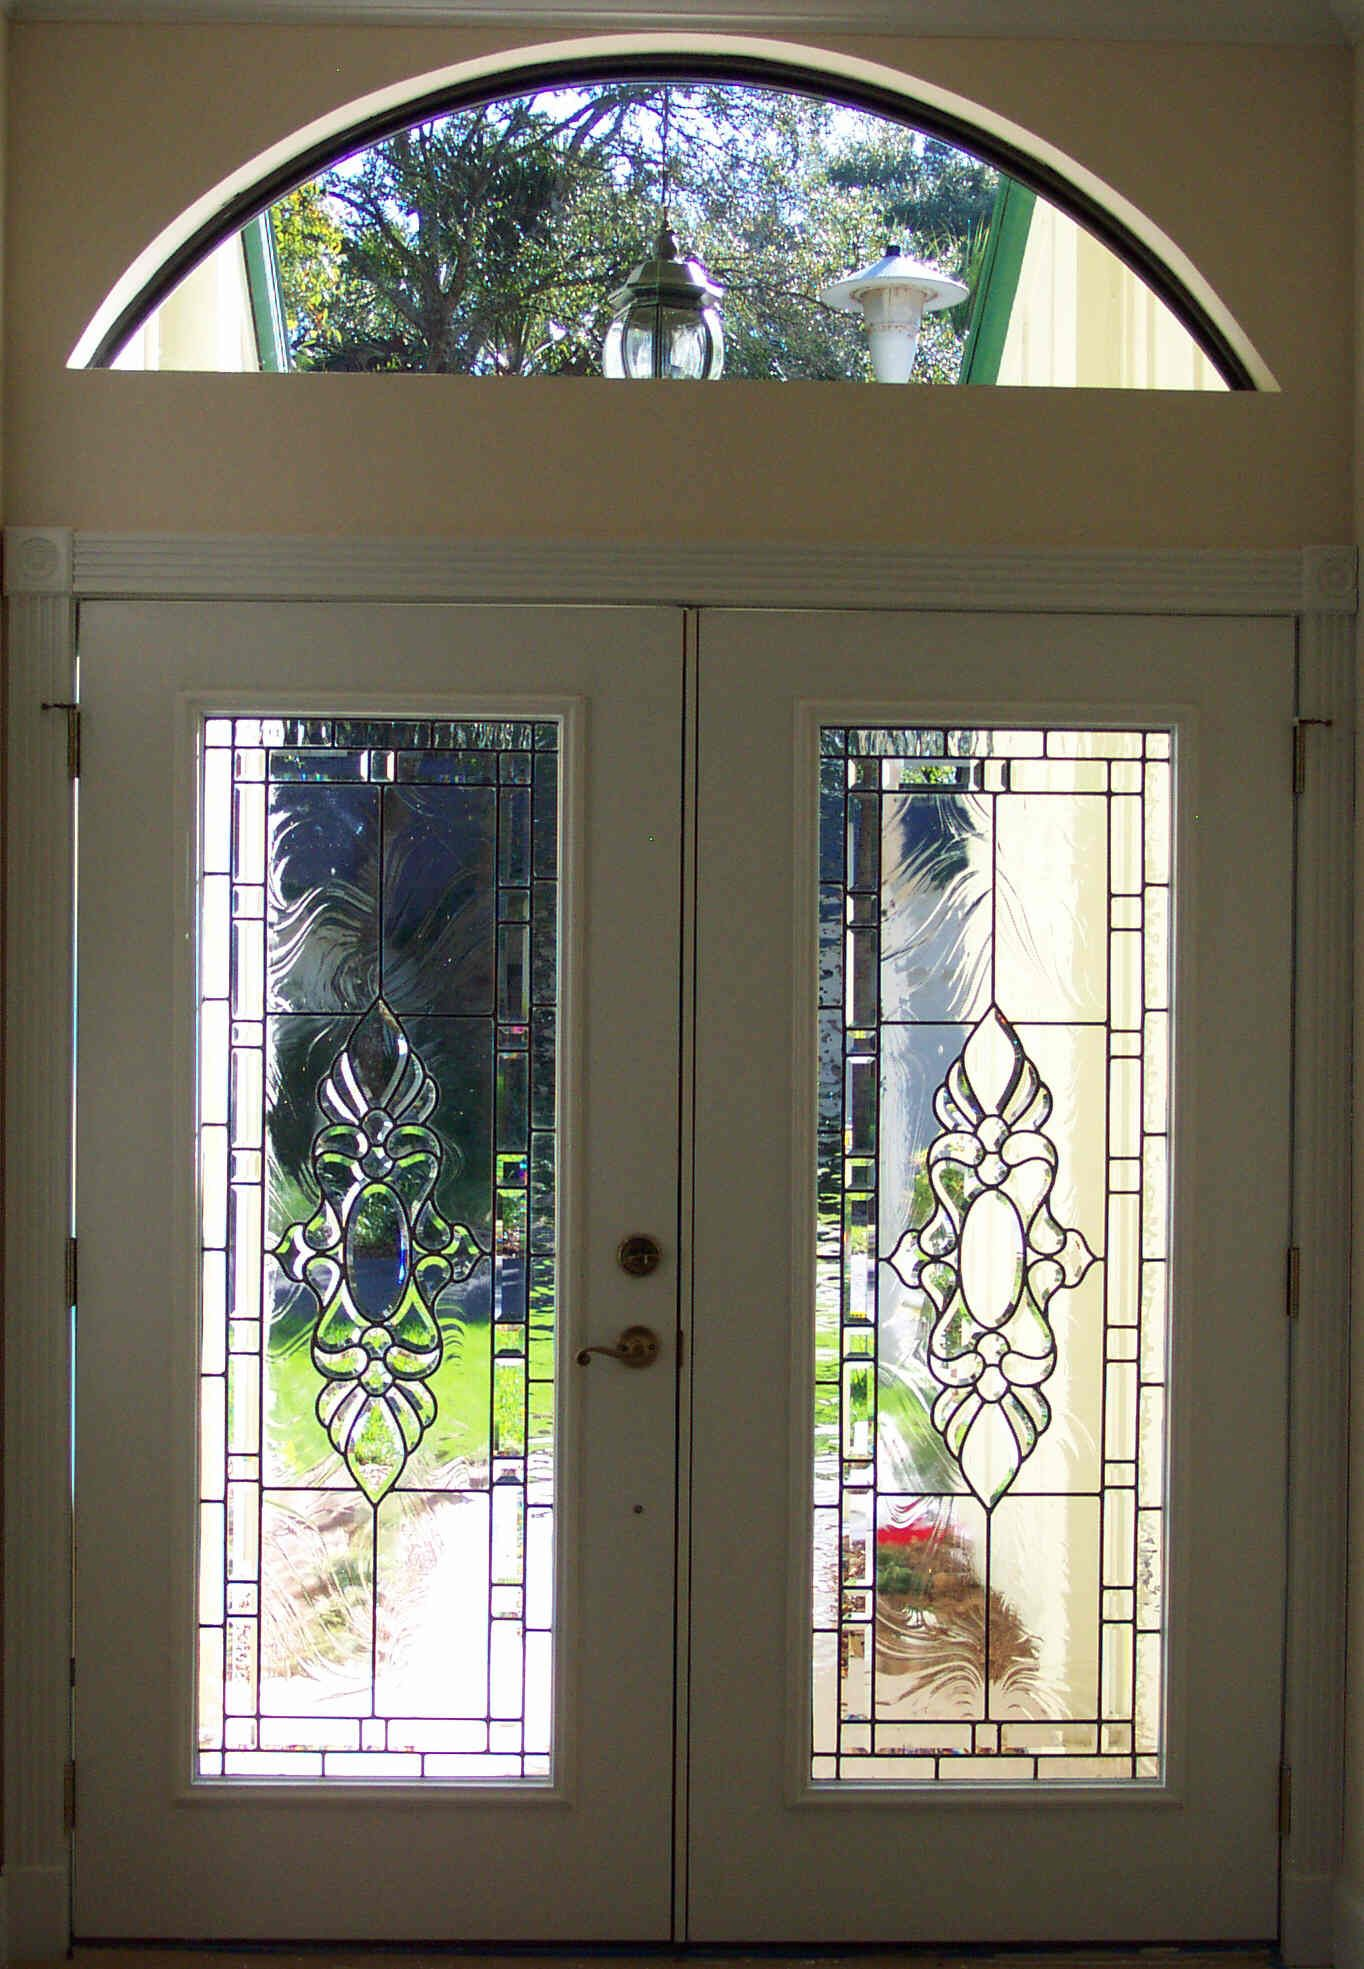 Custom beveled glass door inserts for front entry created by custom beveled glass door inserts for front entry created by designer art glass daytona beach planetlyrics Image collections